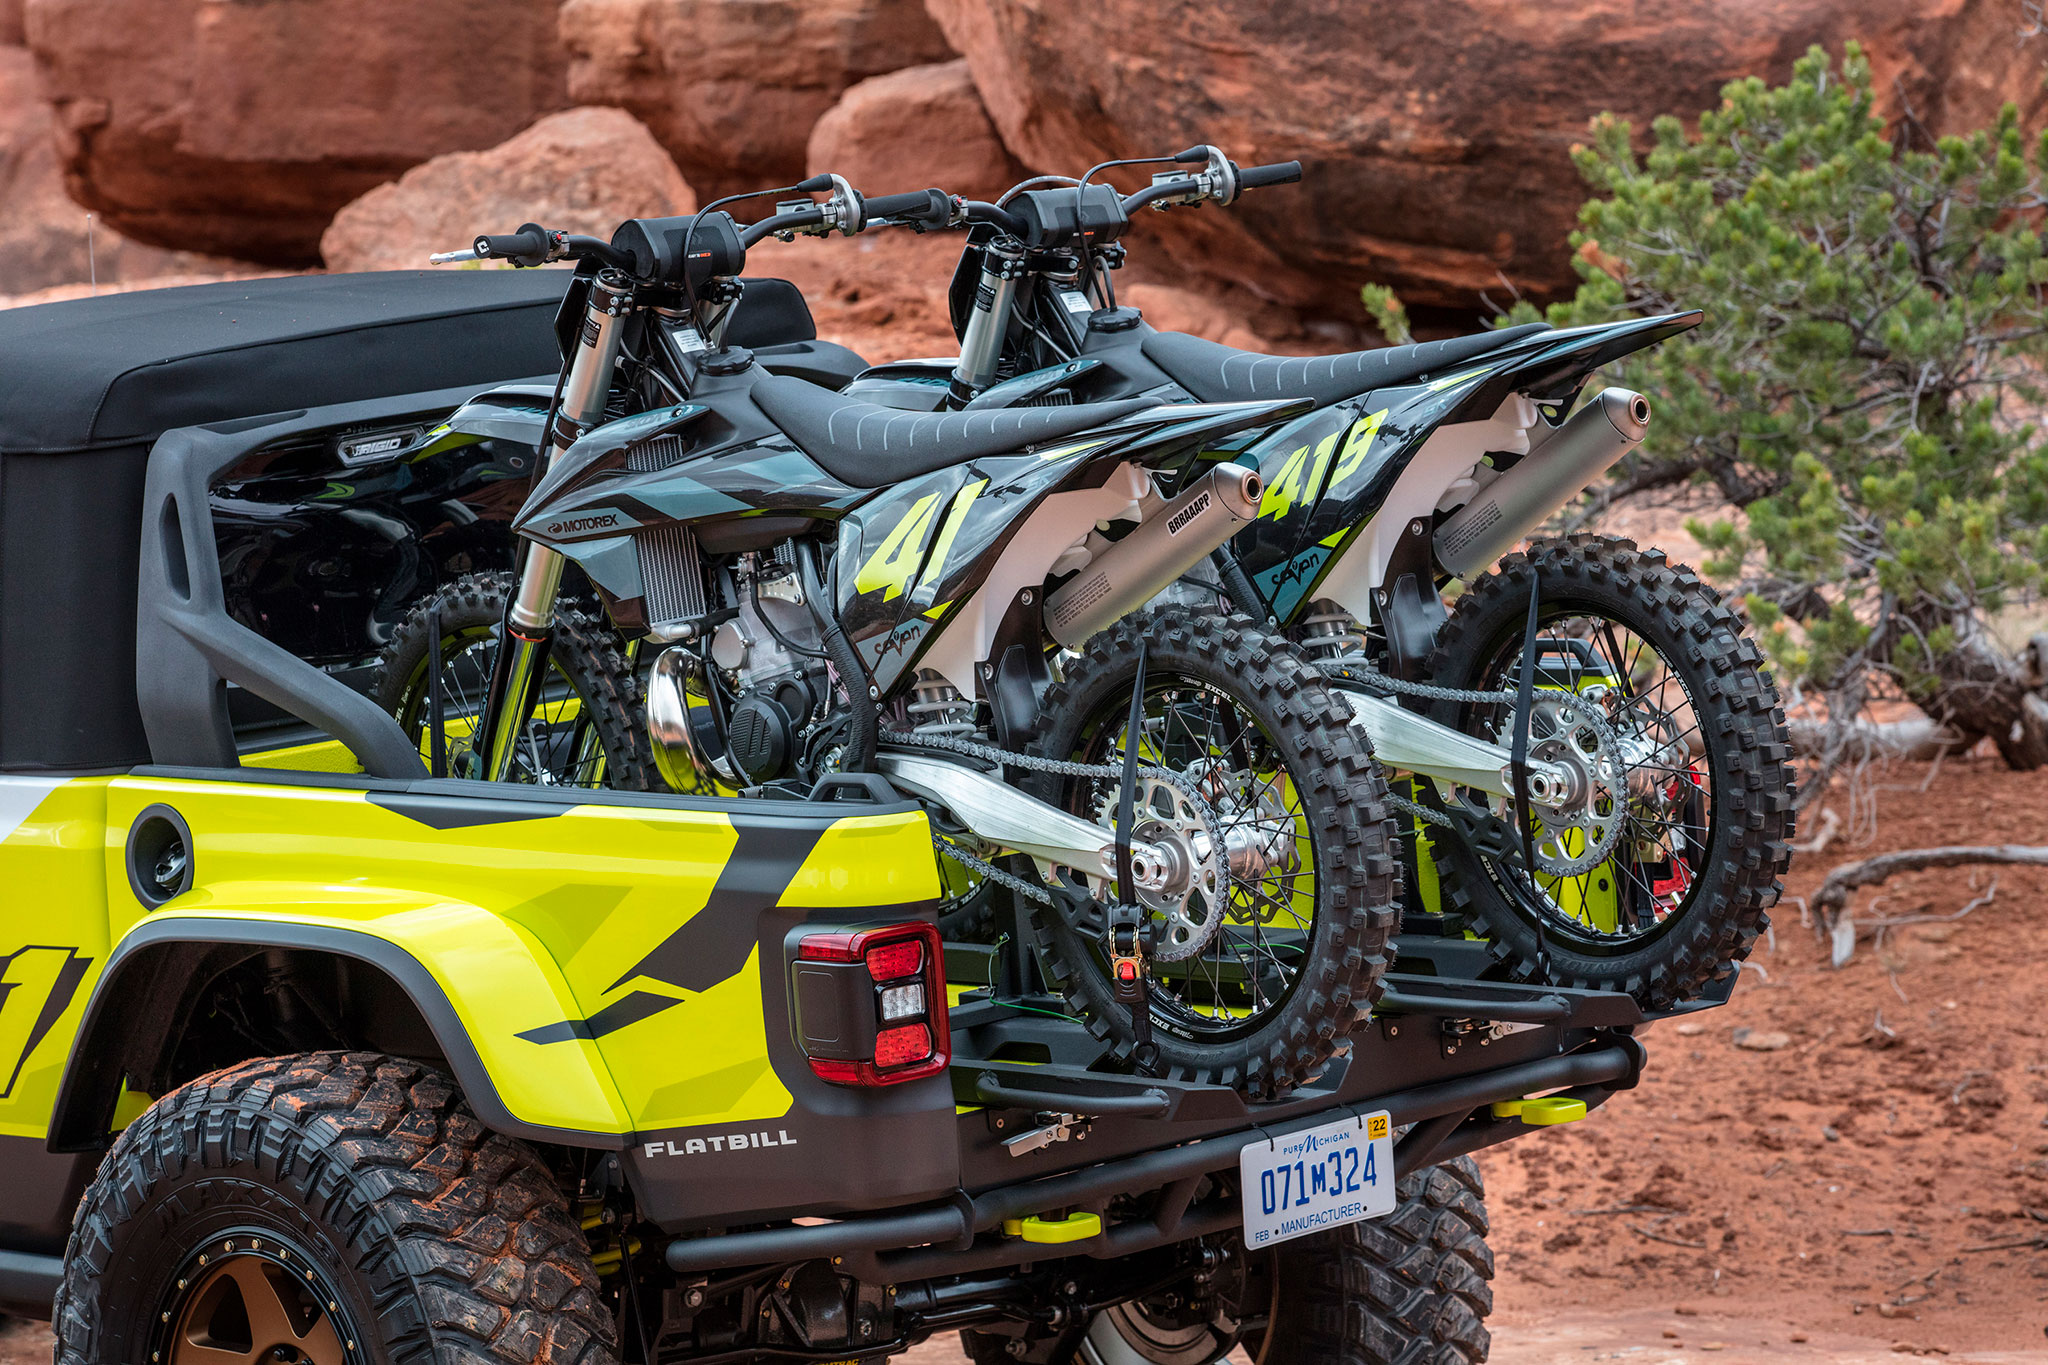 2019 Jeep Gladiator Flabill deux rails coulissants pour les motos - Moab Easter Jeep Safari.